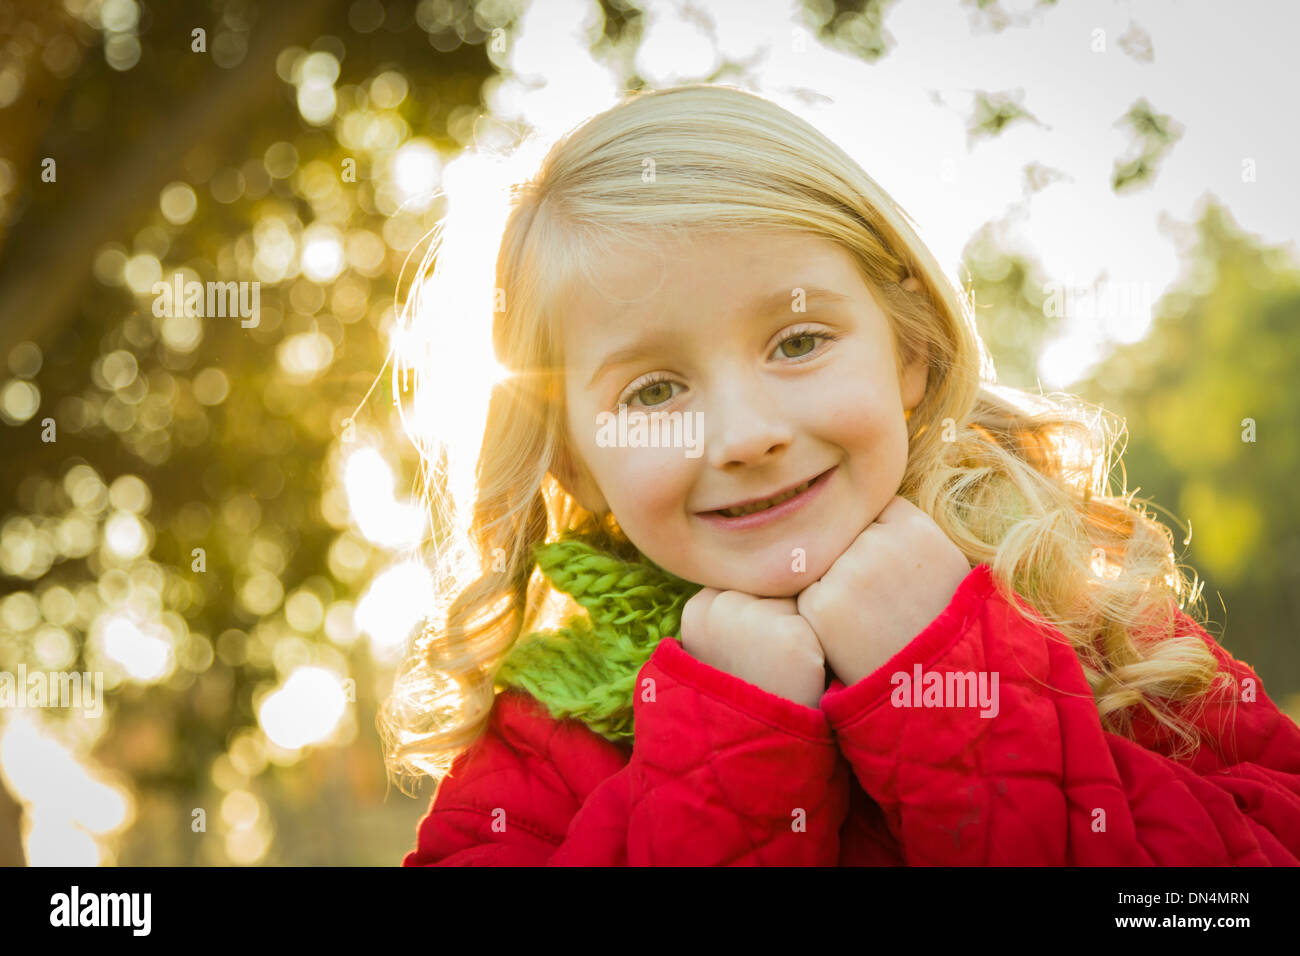 Sweet Little Girl Wearing Winter Coat and Scarf Outdoors at the Park. - Stock Image